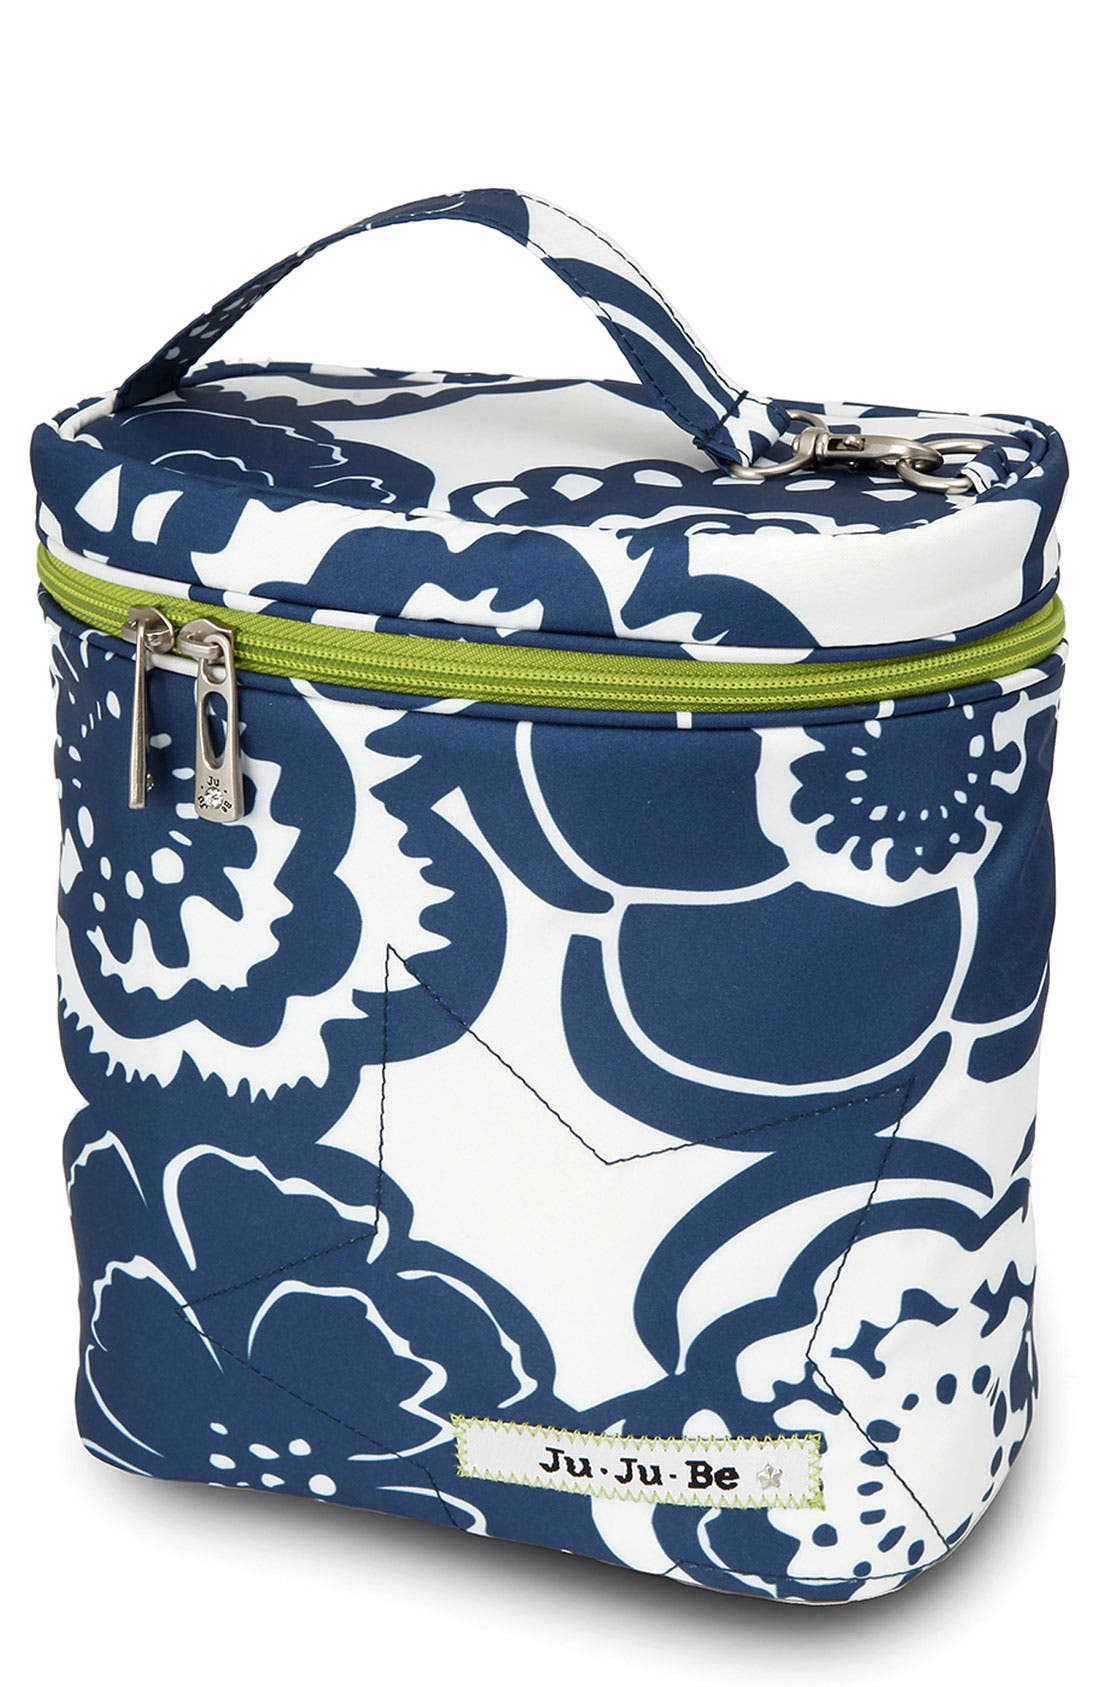 'Fuel Cell' Lunch Bag,                             Main thumbnail 28, color,